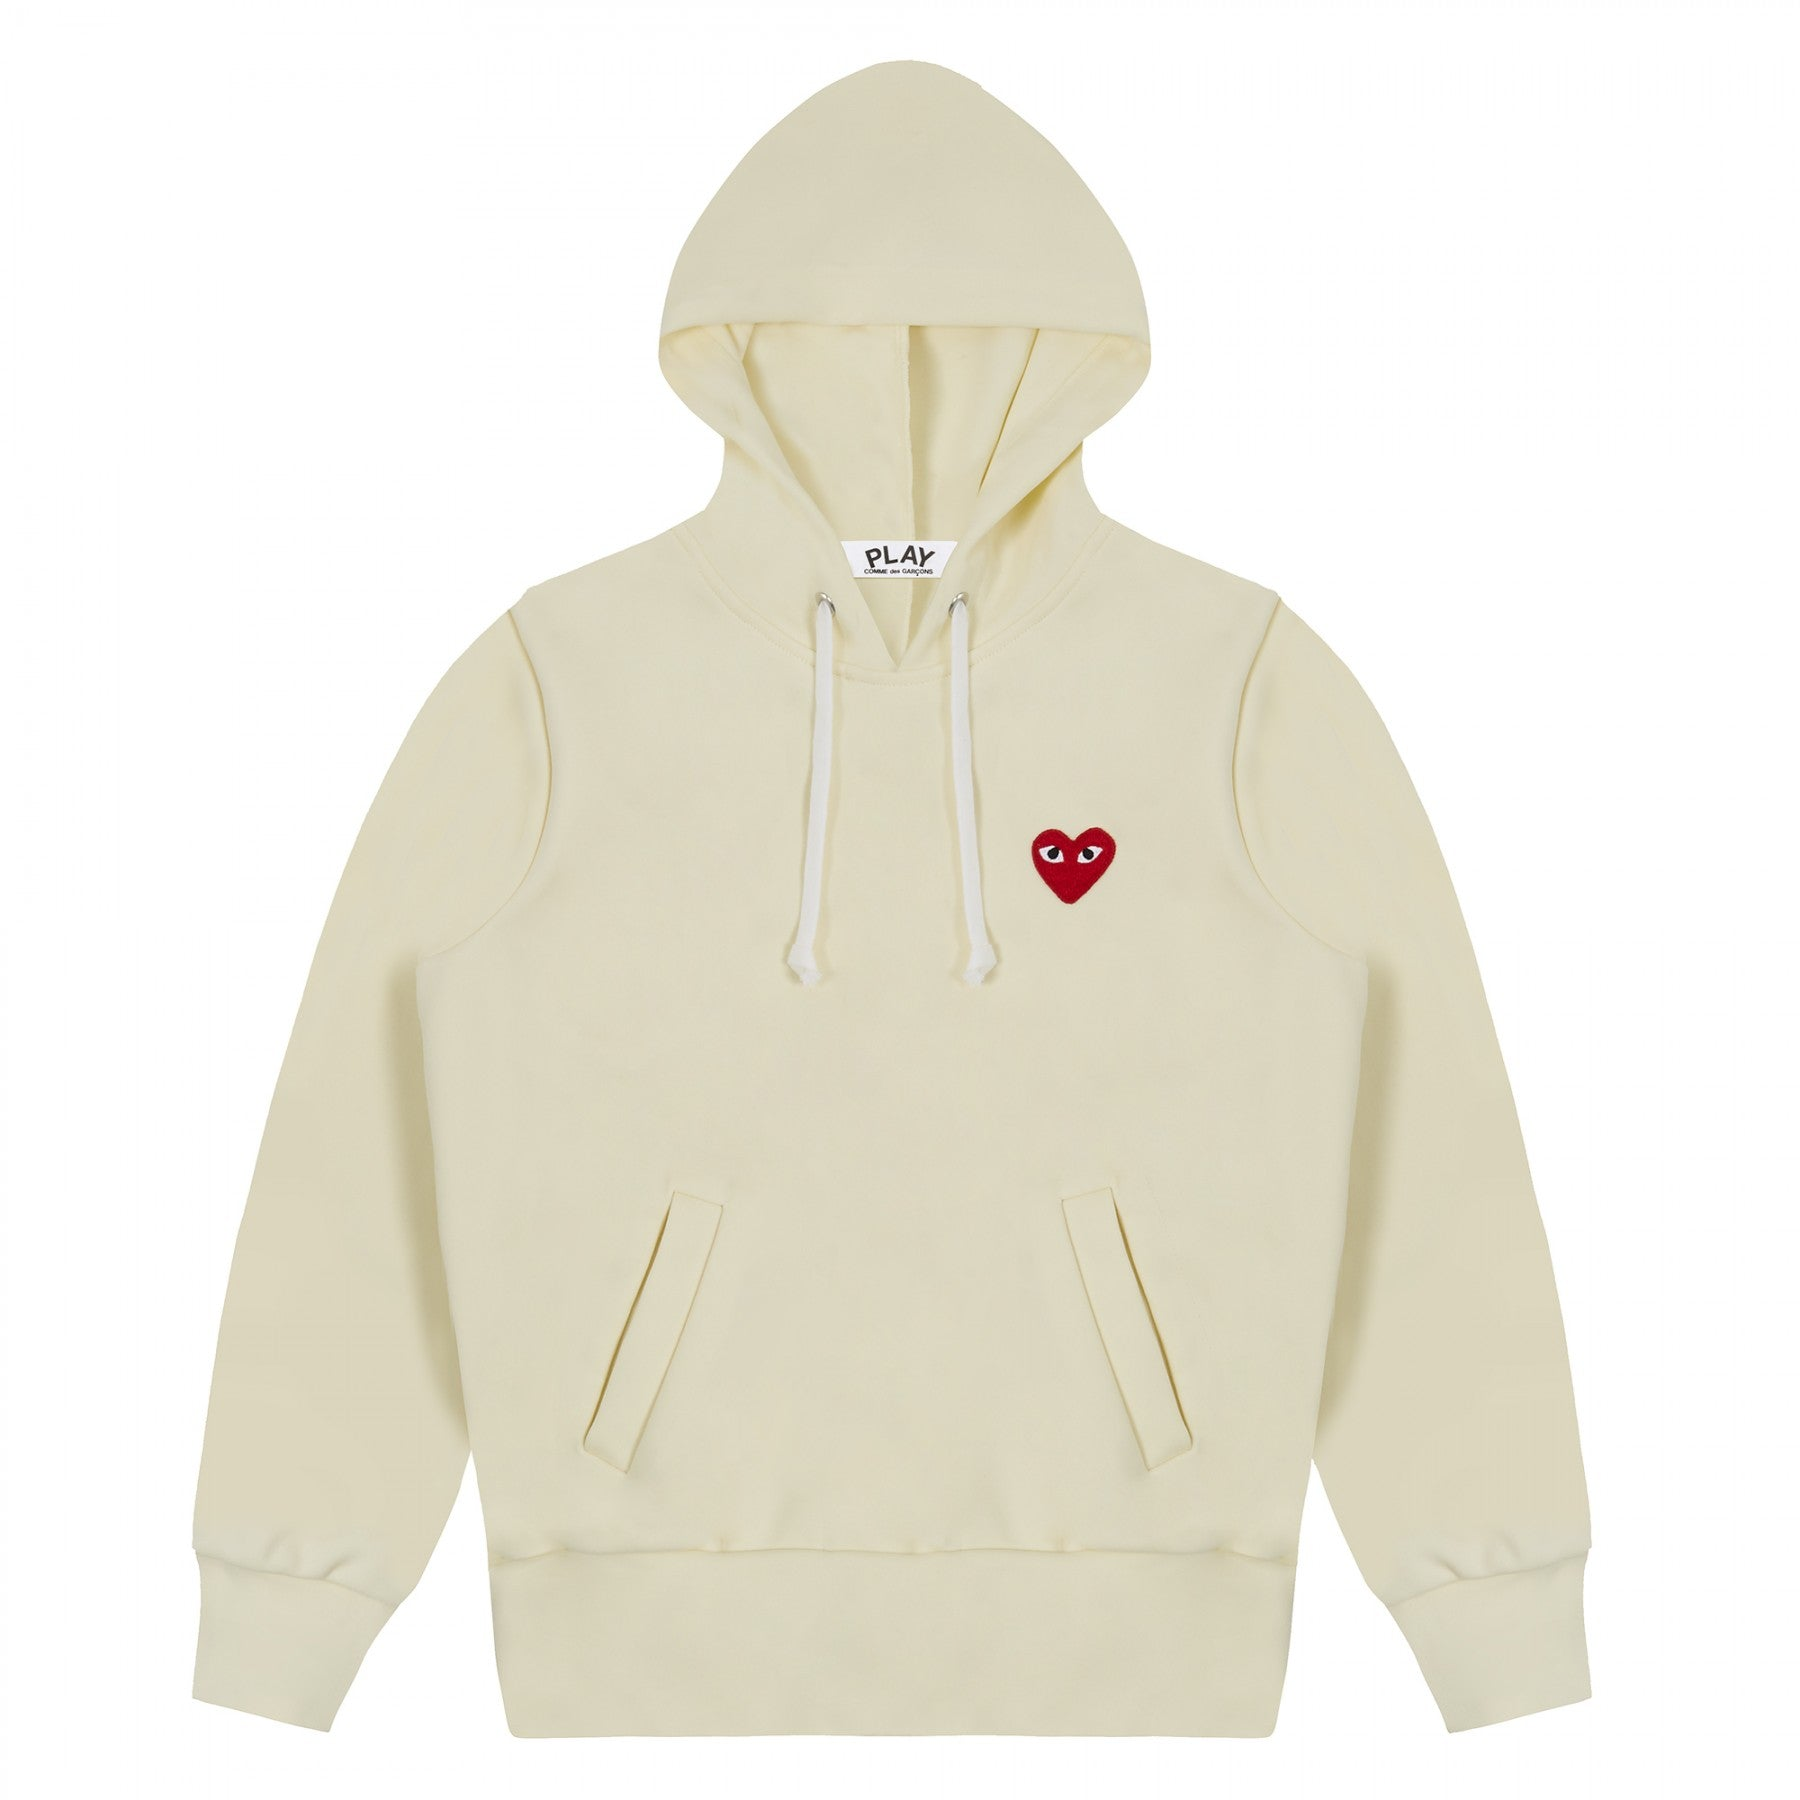 COMME DES GARCONS - PLAY HOODED SWEATSHIRT (IVORY) WMNS